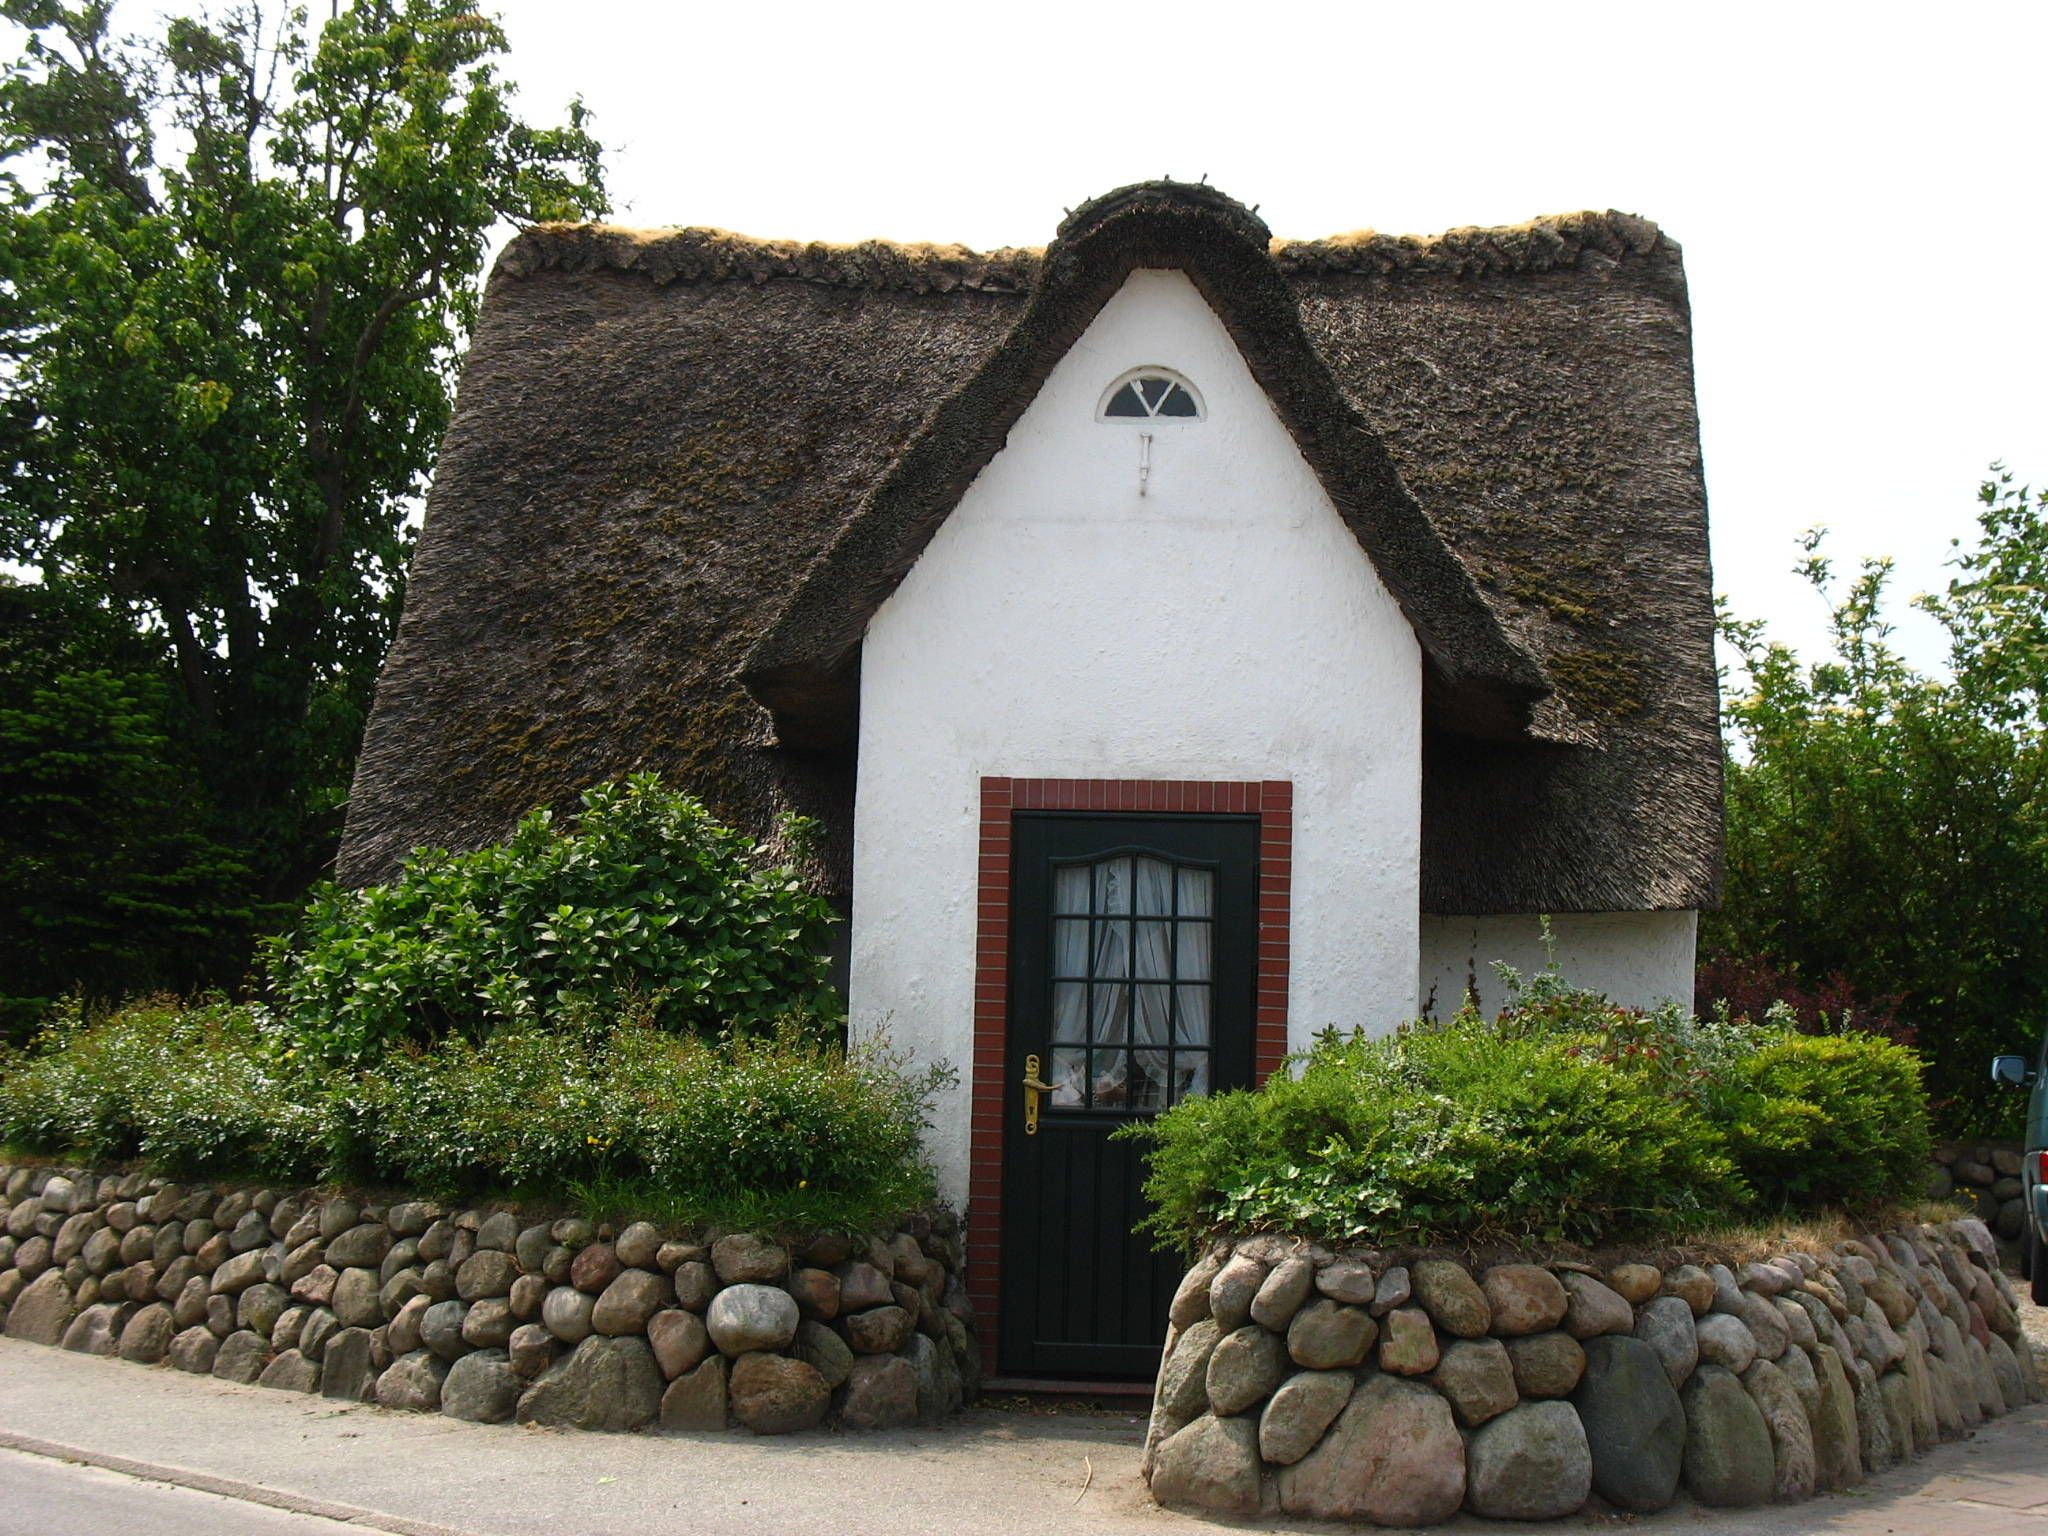 thatched roof houses on pinterest cottages fairytale house and english homes. Black Bedroom Furniture Sets. Home Design Ideas